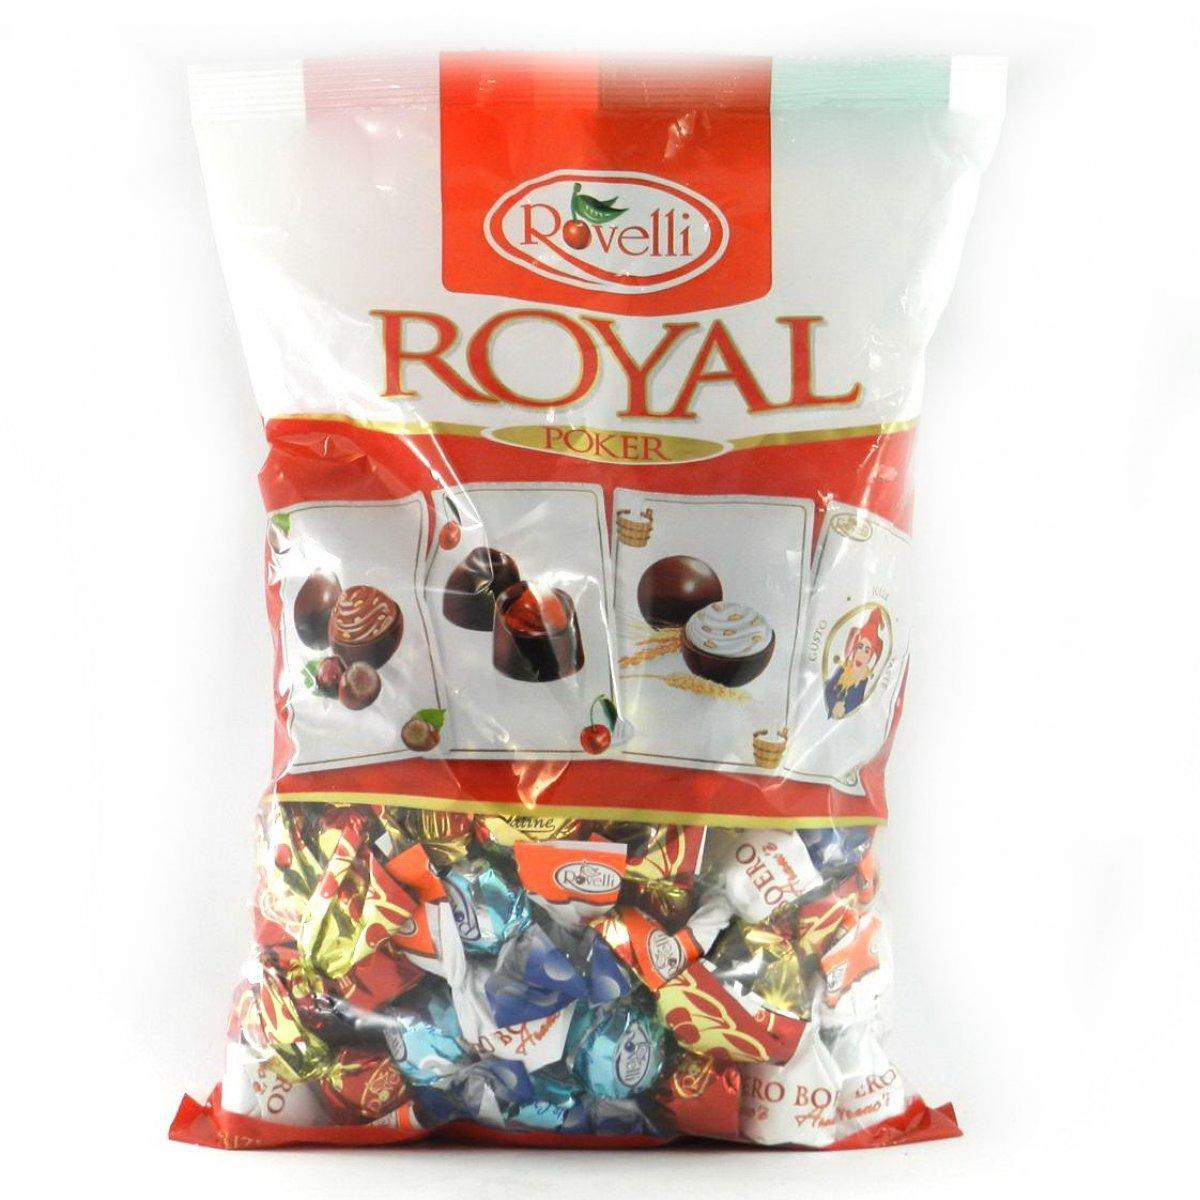 Шоколадные конфеты «Rovelli Royal Poker» с начинками 900 g. Италия